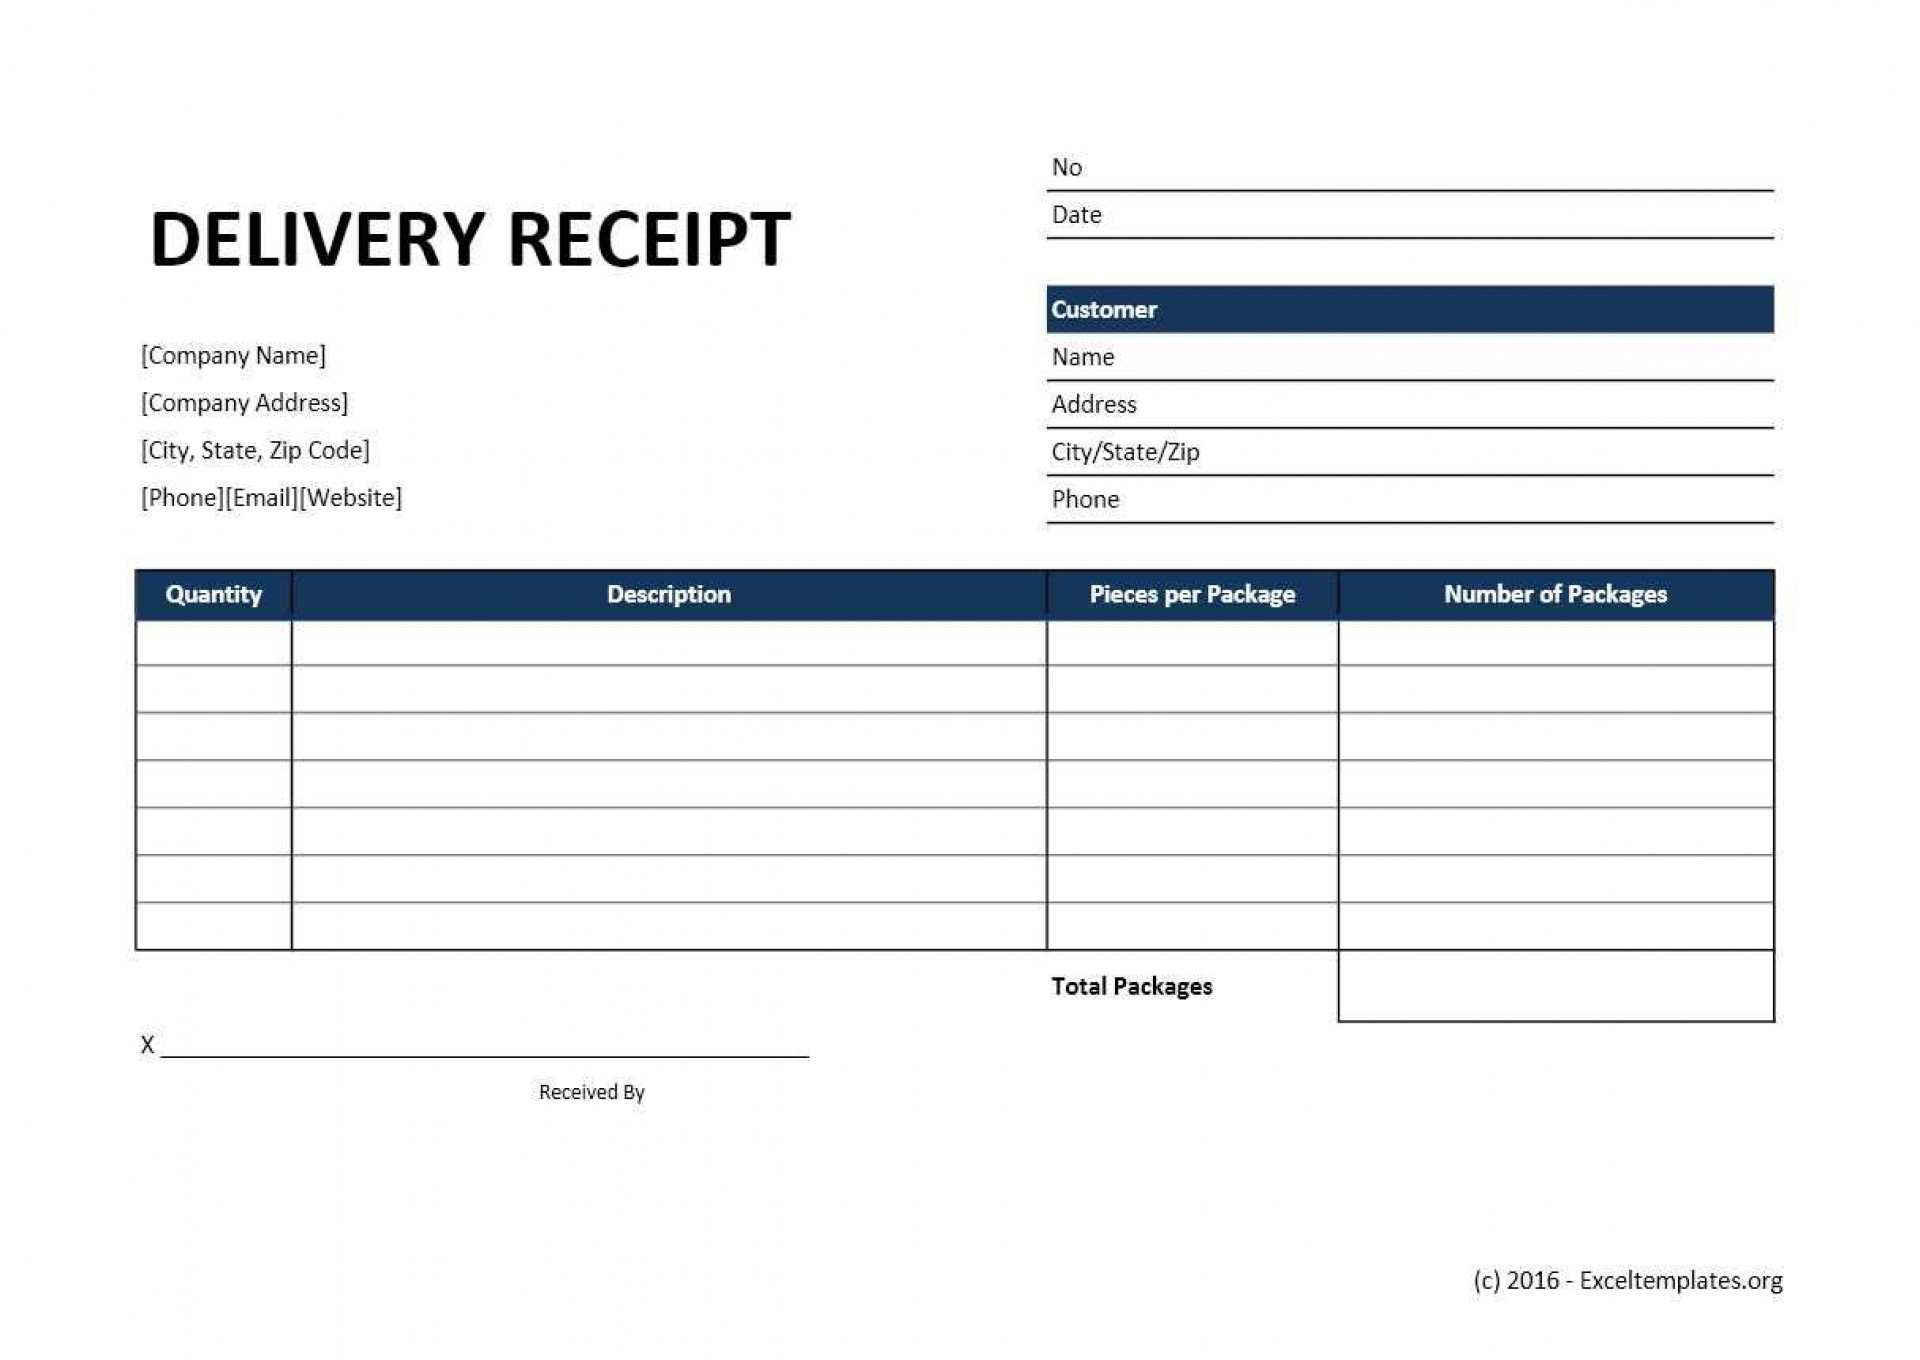 003 Simple Excel Receipt Template Download Highest Quality  Format Microsoft Delivery Free1920